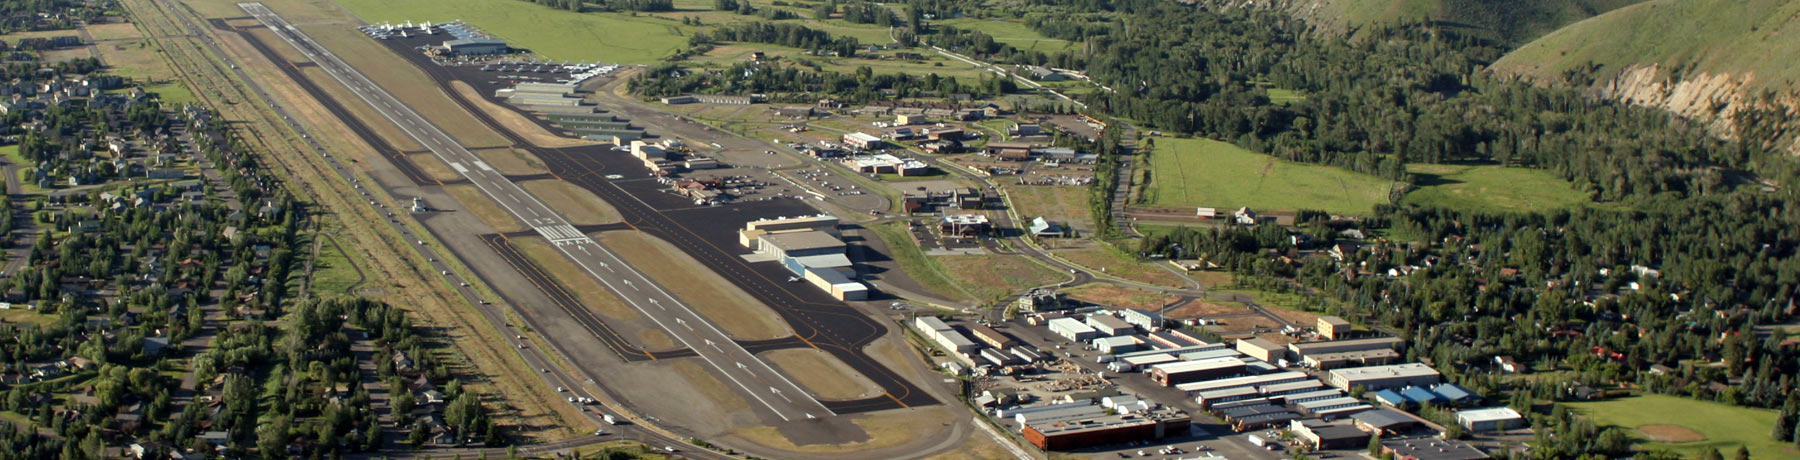 Friedman Memorial Airport - Hailey, Idaho